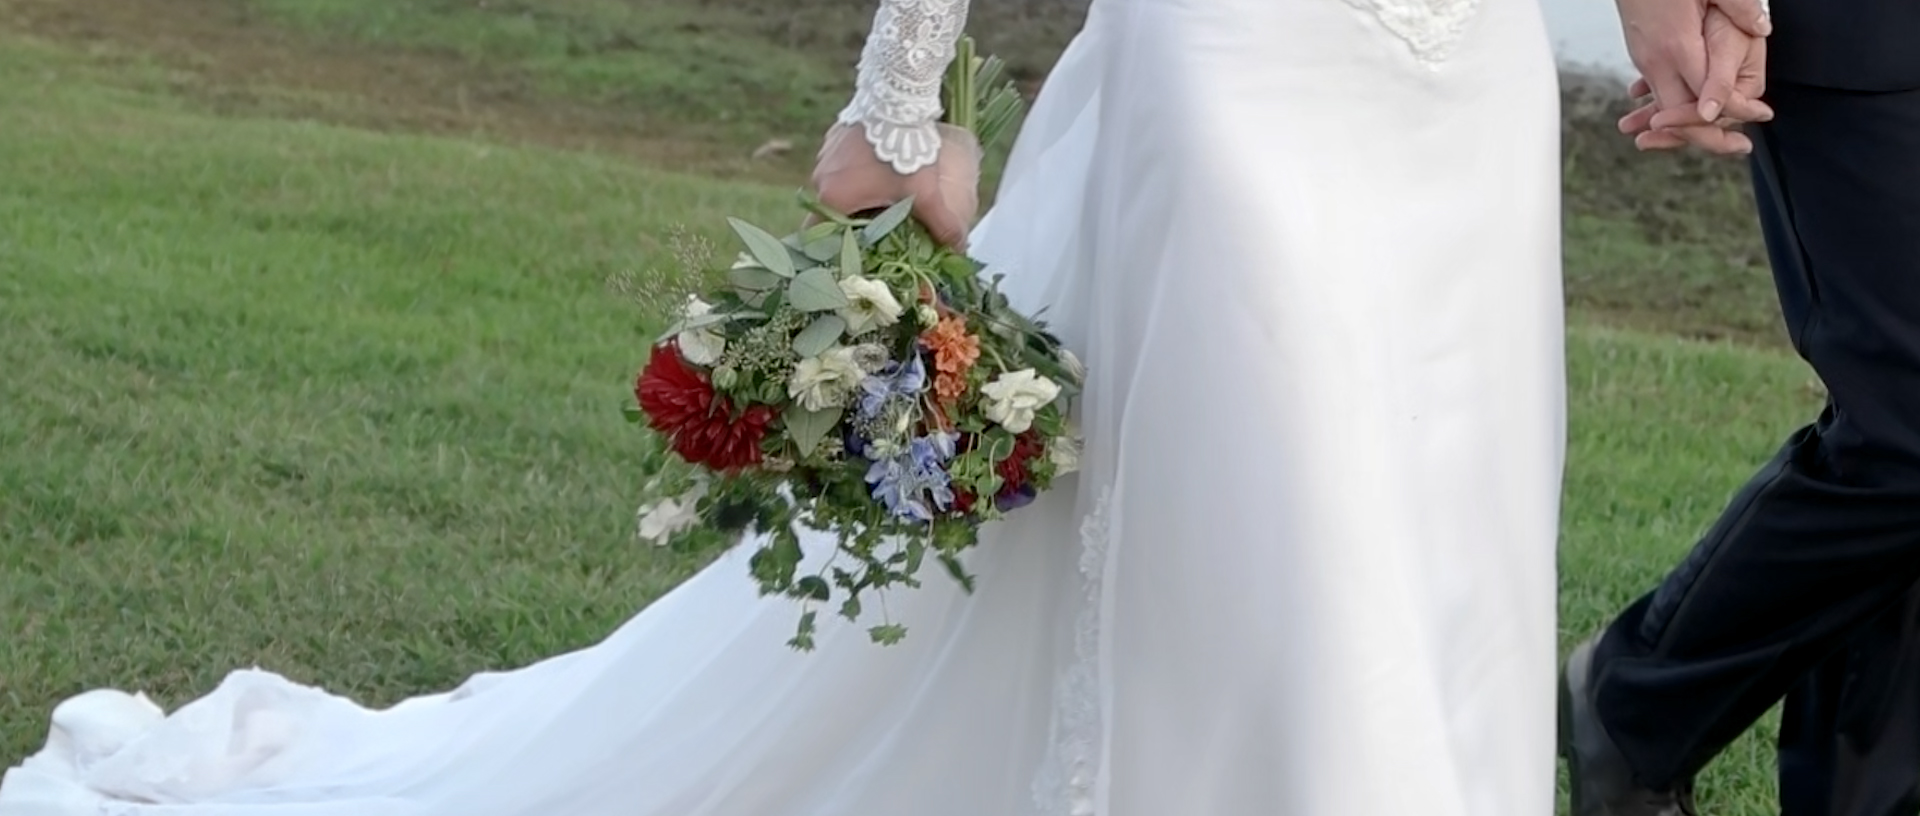 Atlanta Wedding Videographer0096.jpg